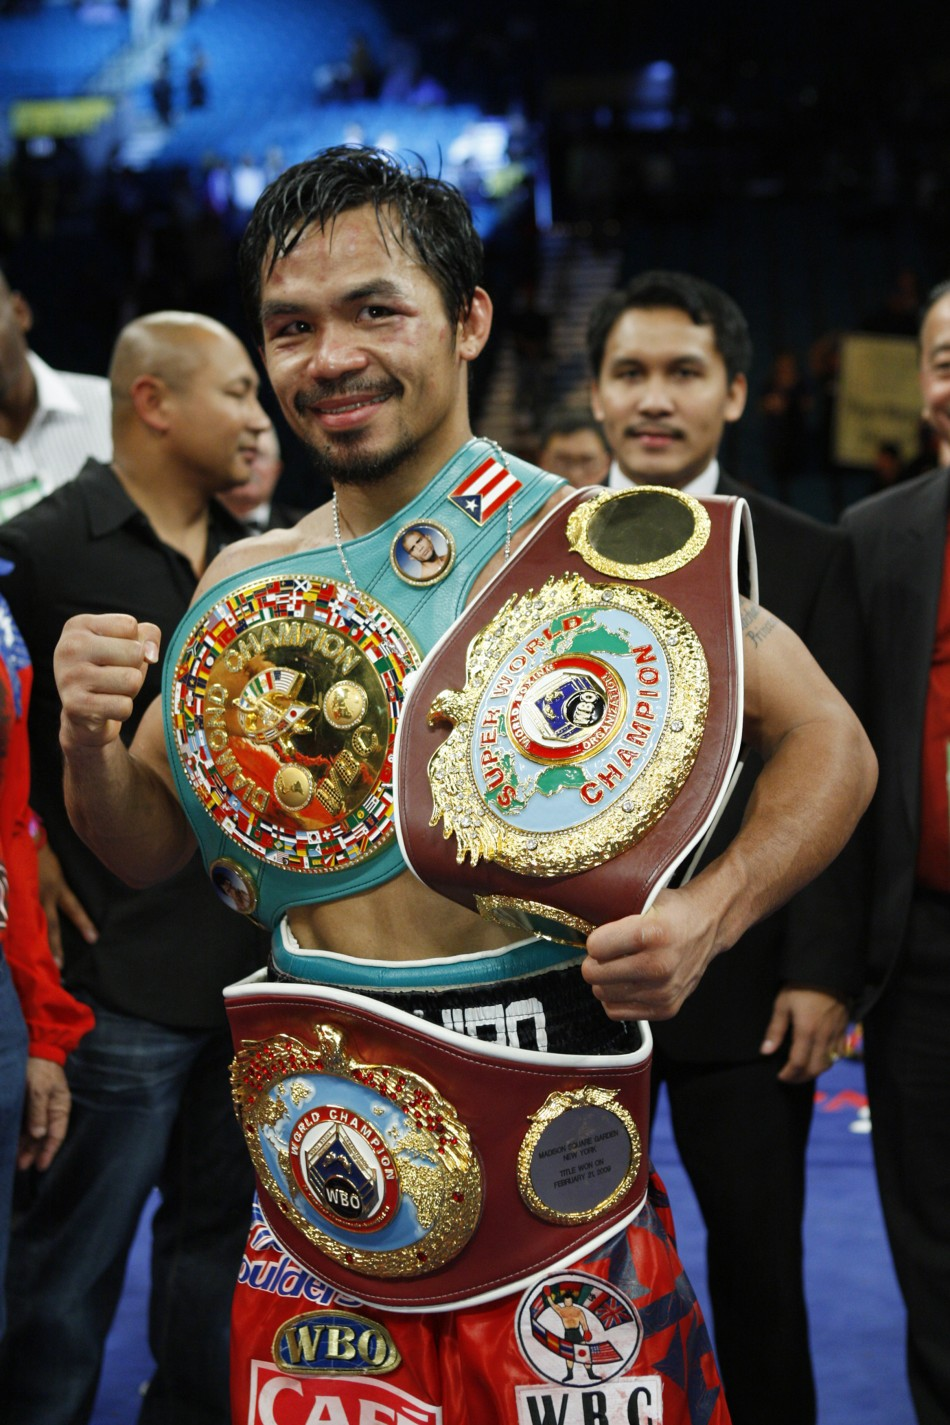 BOXING SUPERSTAR MANNY PACQUIAO BECOMES A SHAREHOLDER IN MMA PROMOTION ONEFC